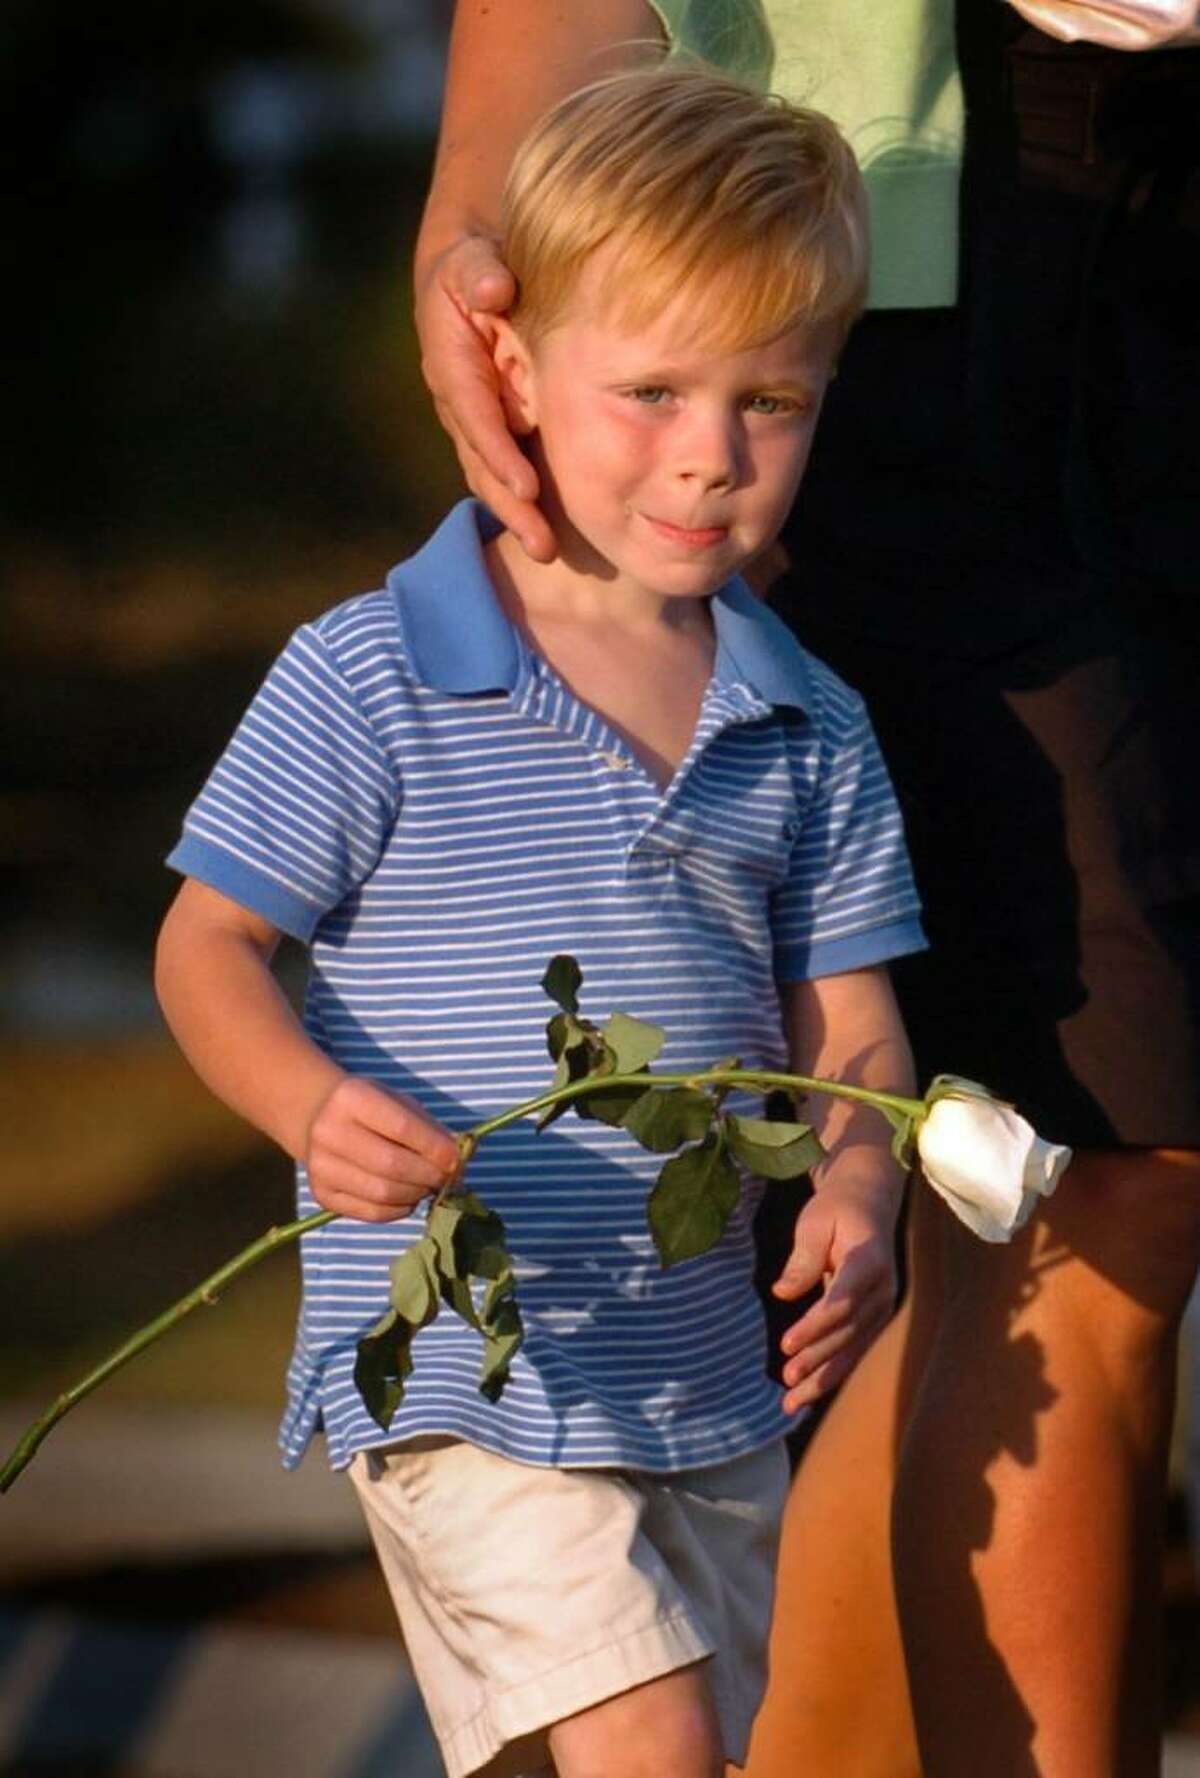 Four-year-old Colin Woodward, of Fairfield, Conn., carries a rose to place on the monument of his uncle Bill Hunt during the annual September 11 memorial ceremony Wednesday Sept. 9, 2009 at Sherwood Island State Park in Westport, Conn.